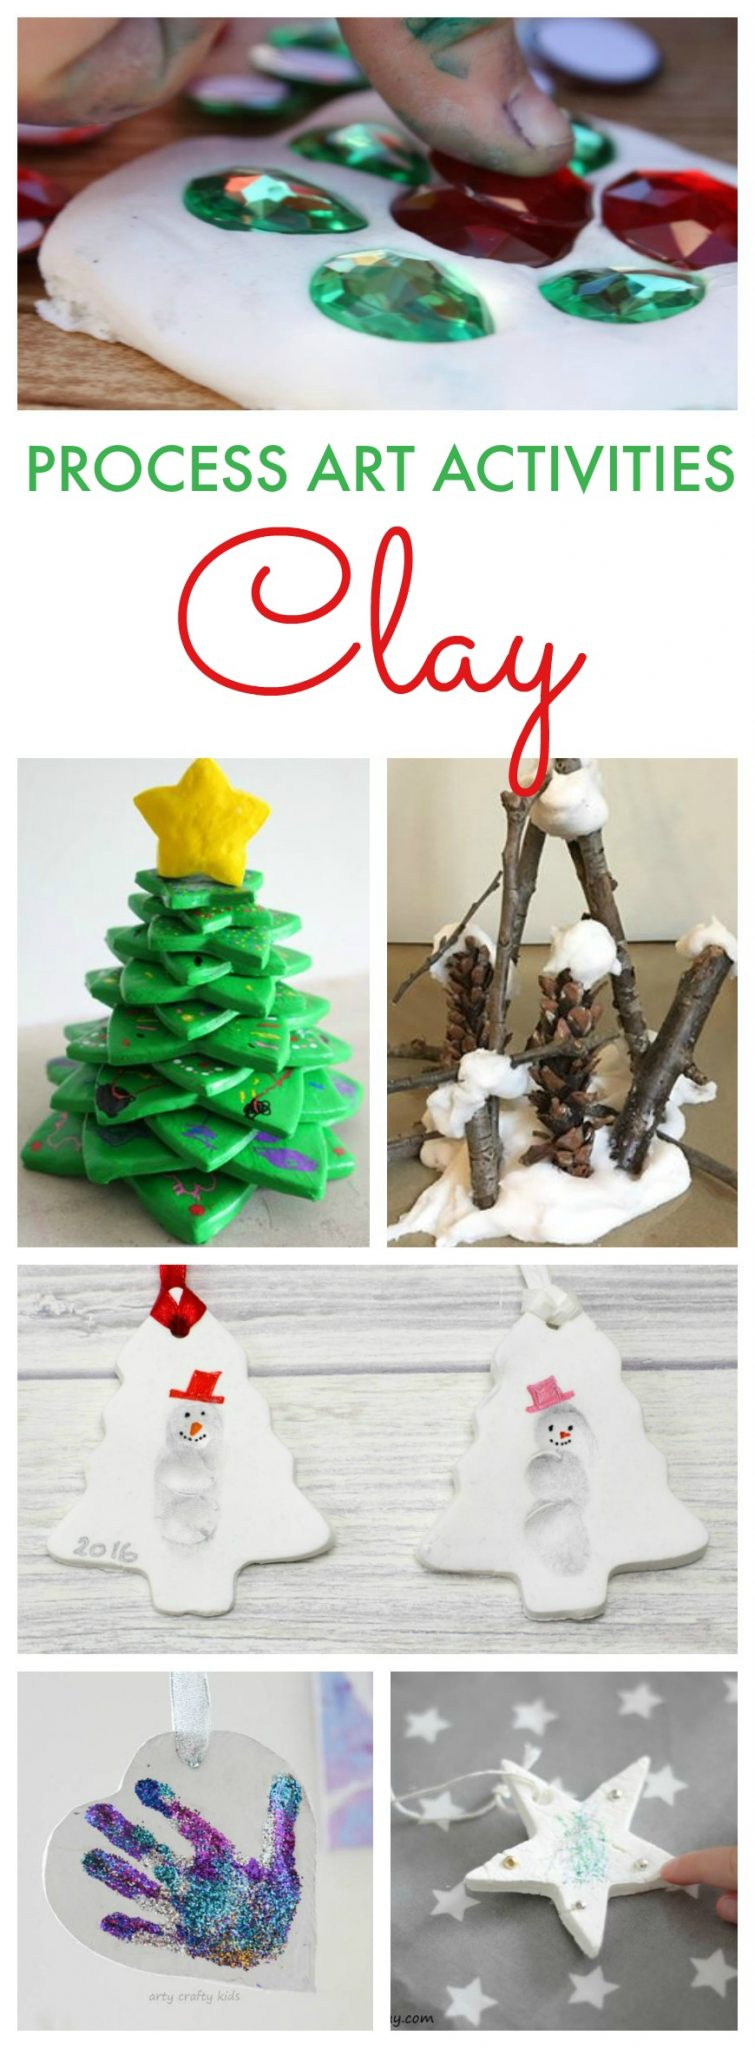 A fantastic selection of clay process art activities for kids of all ages. Focus on the process not the product with these fantastic ideas.